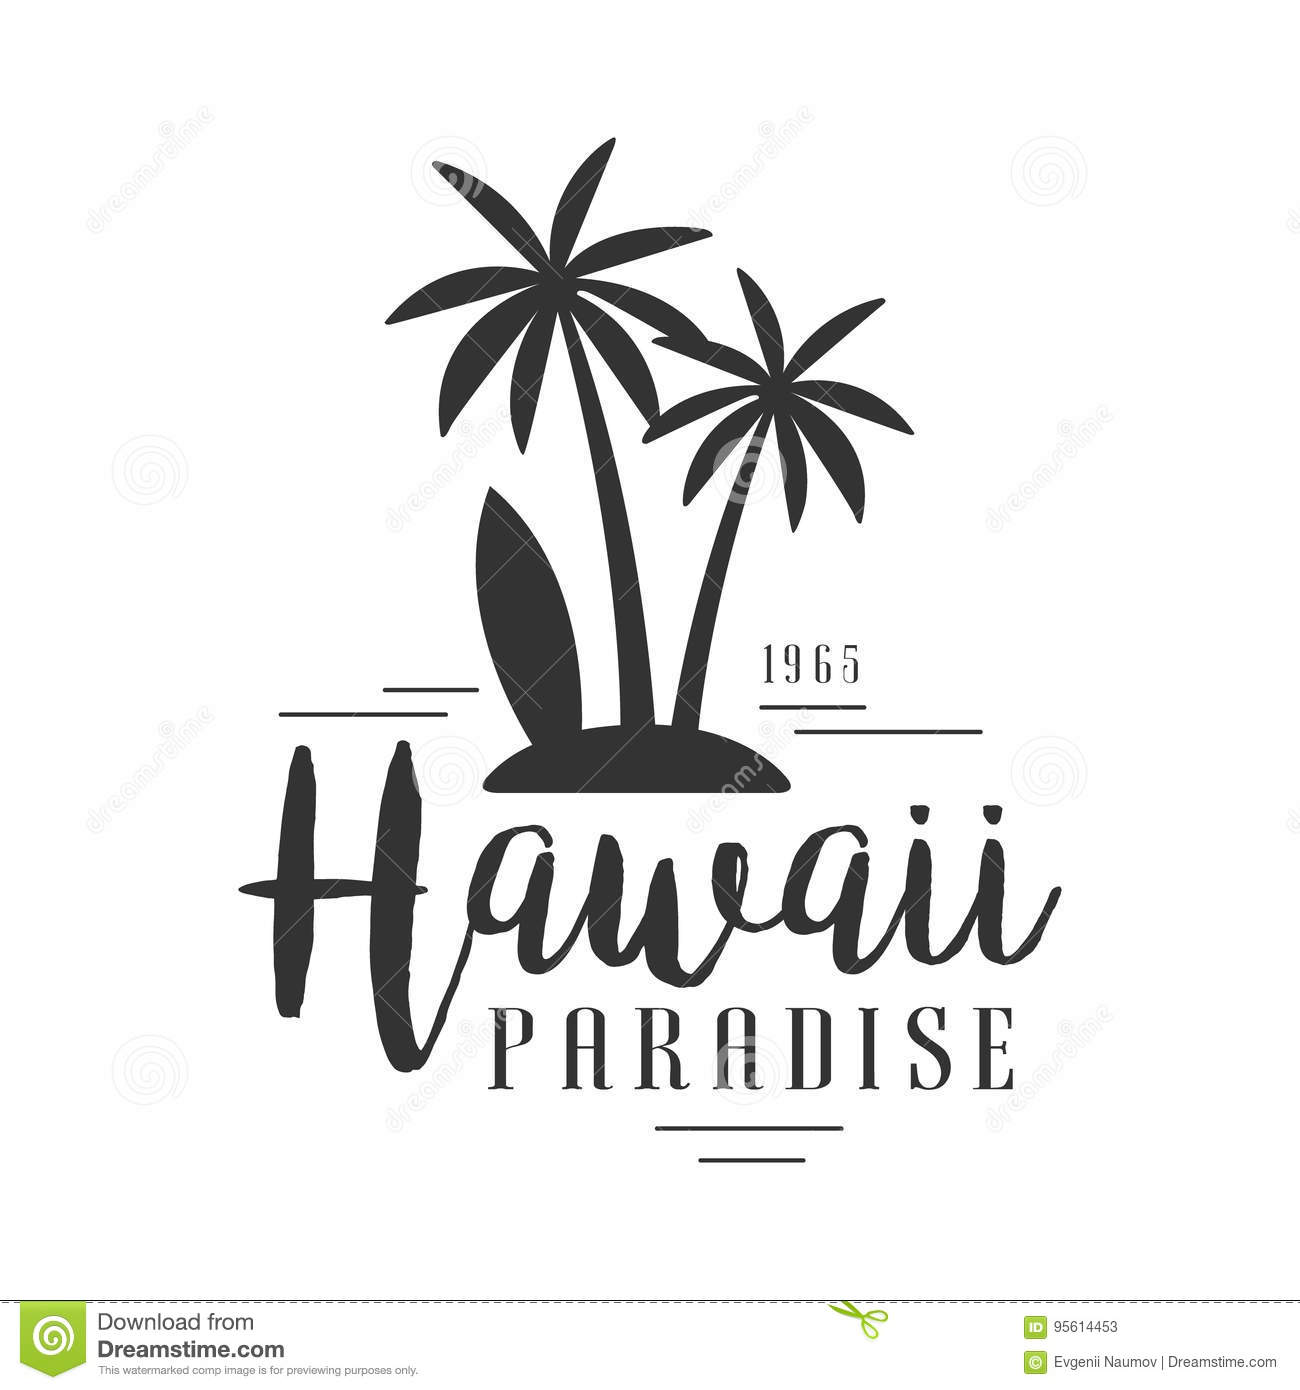 hawaii paradise since 1965 logo template black and white vector